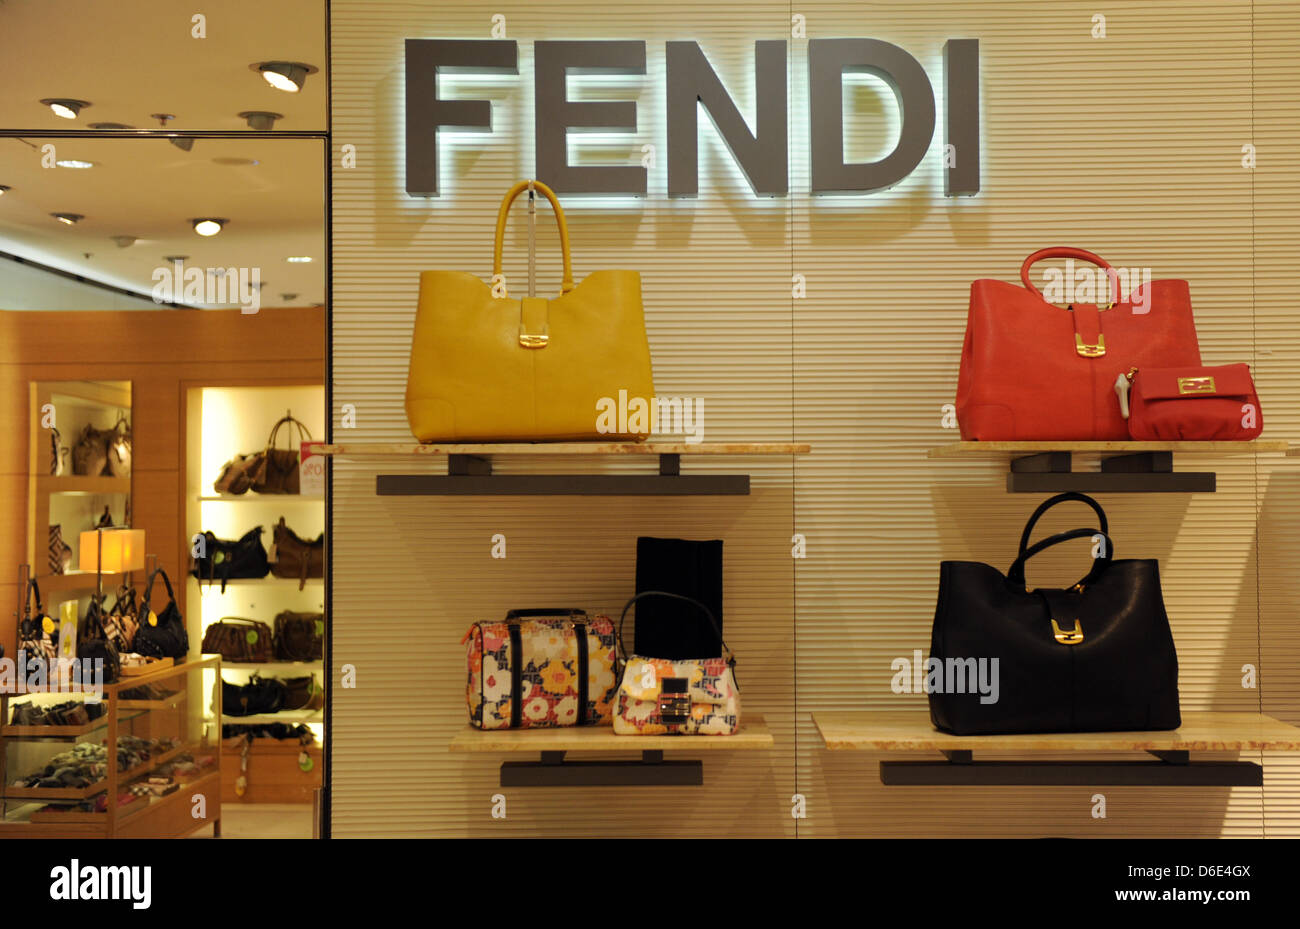 Handbags of luxury brand Fendi, pictured on 18 January 2012 the shopping center Galeries Lafayette in Berlin, Germany. - Stock Image